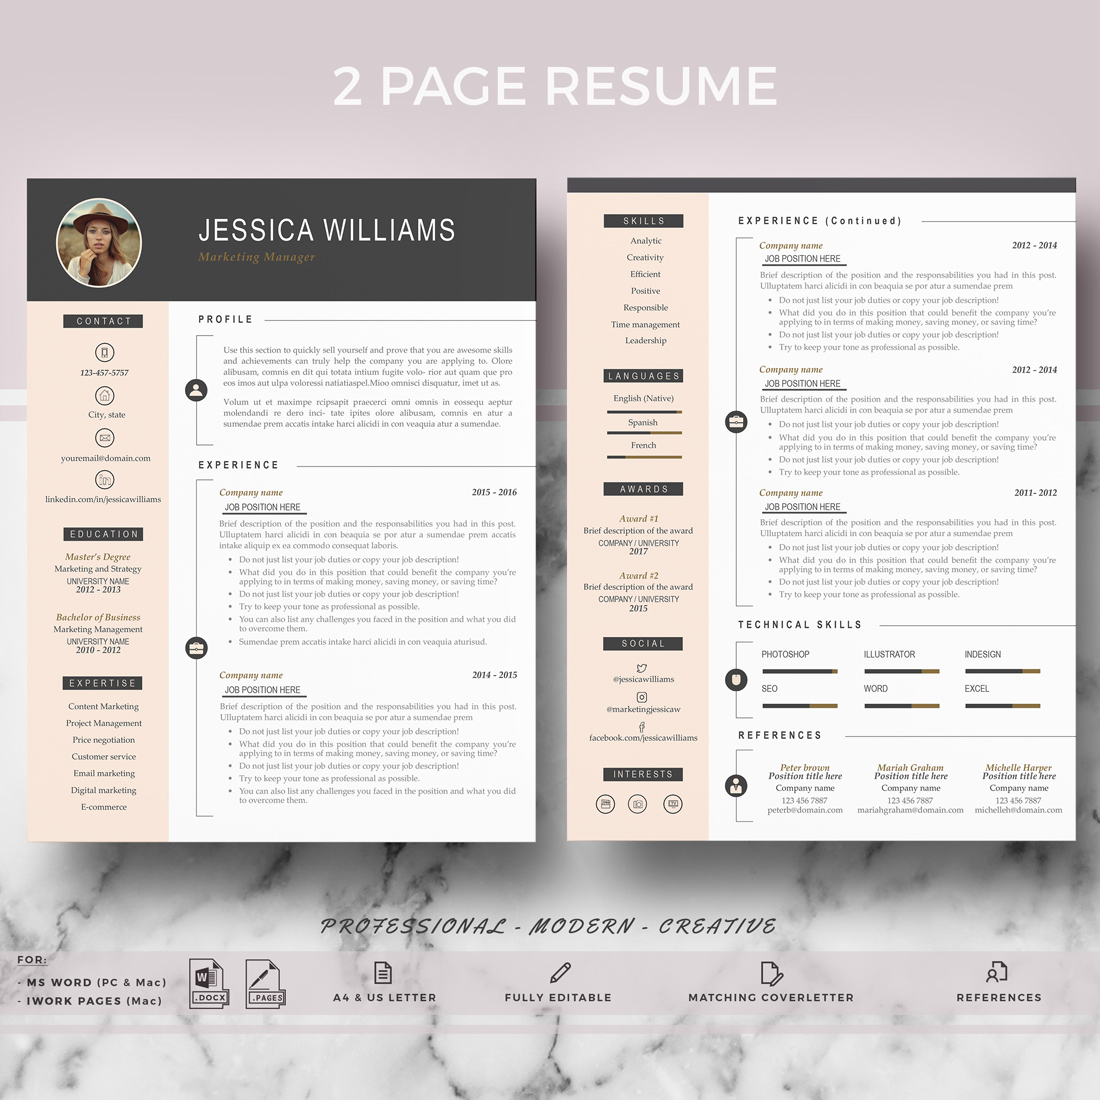 Professional Cv Resume Templates: Professional & Modern Resume Template